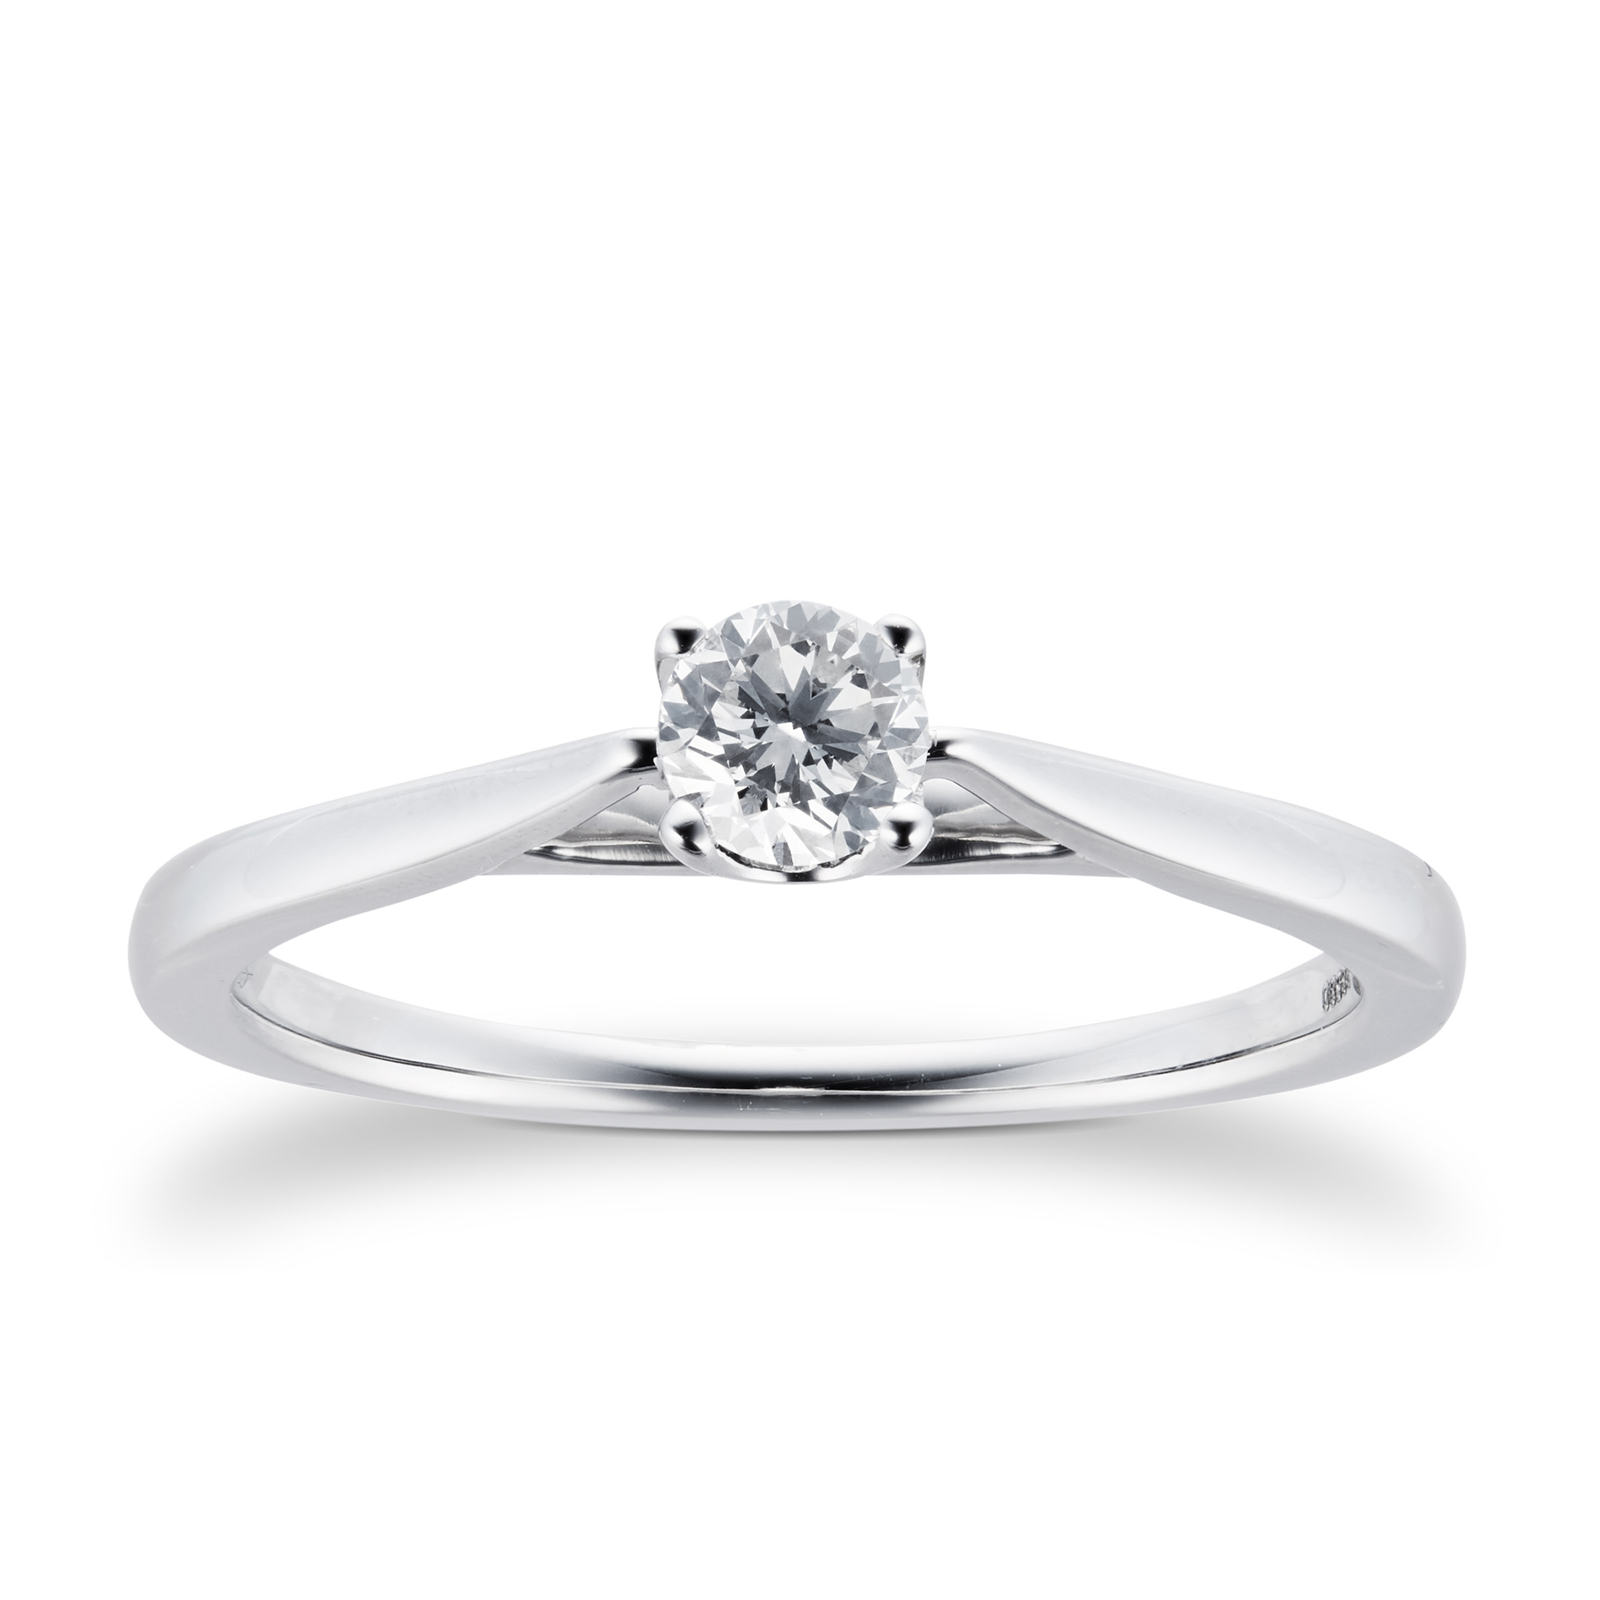 Platinum Brilliant Cut 0.25 Carat 88 Facet Diamond Ring